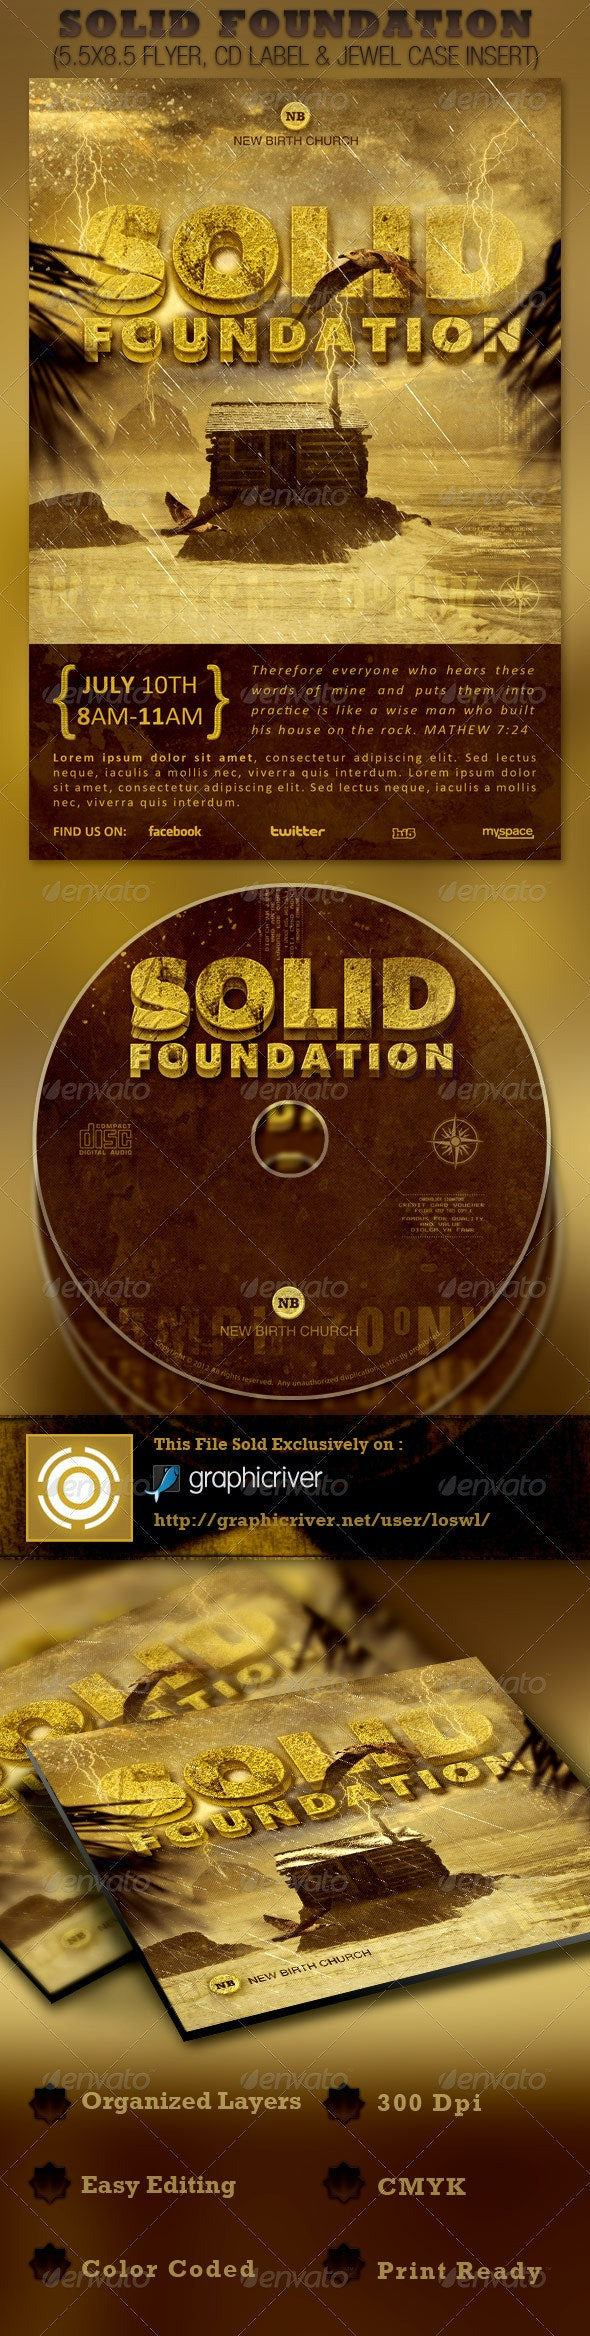 Solid Foundation Church Flyer and CD Template - Church Flyers